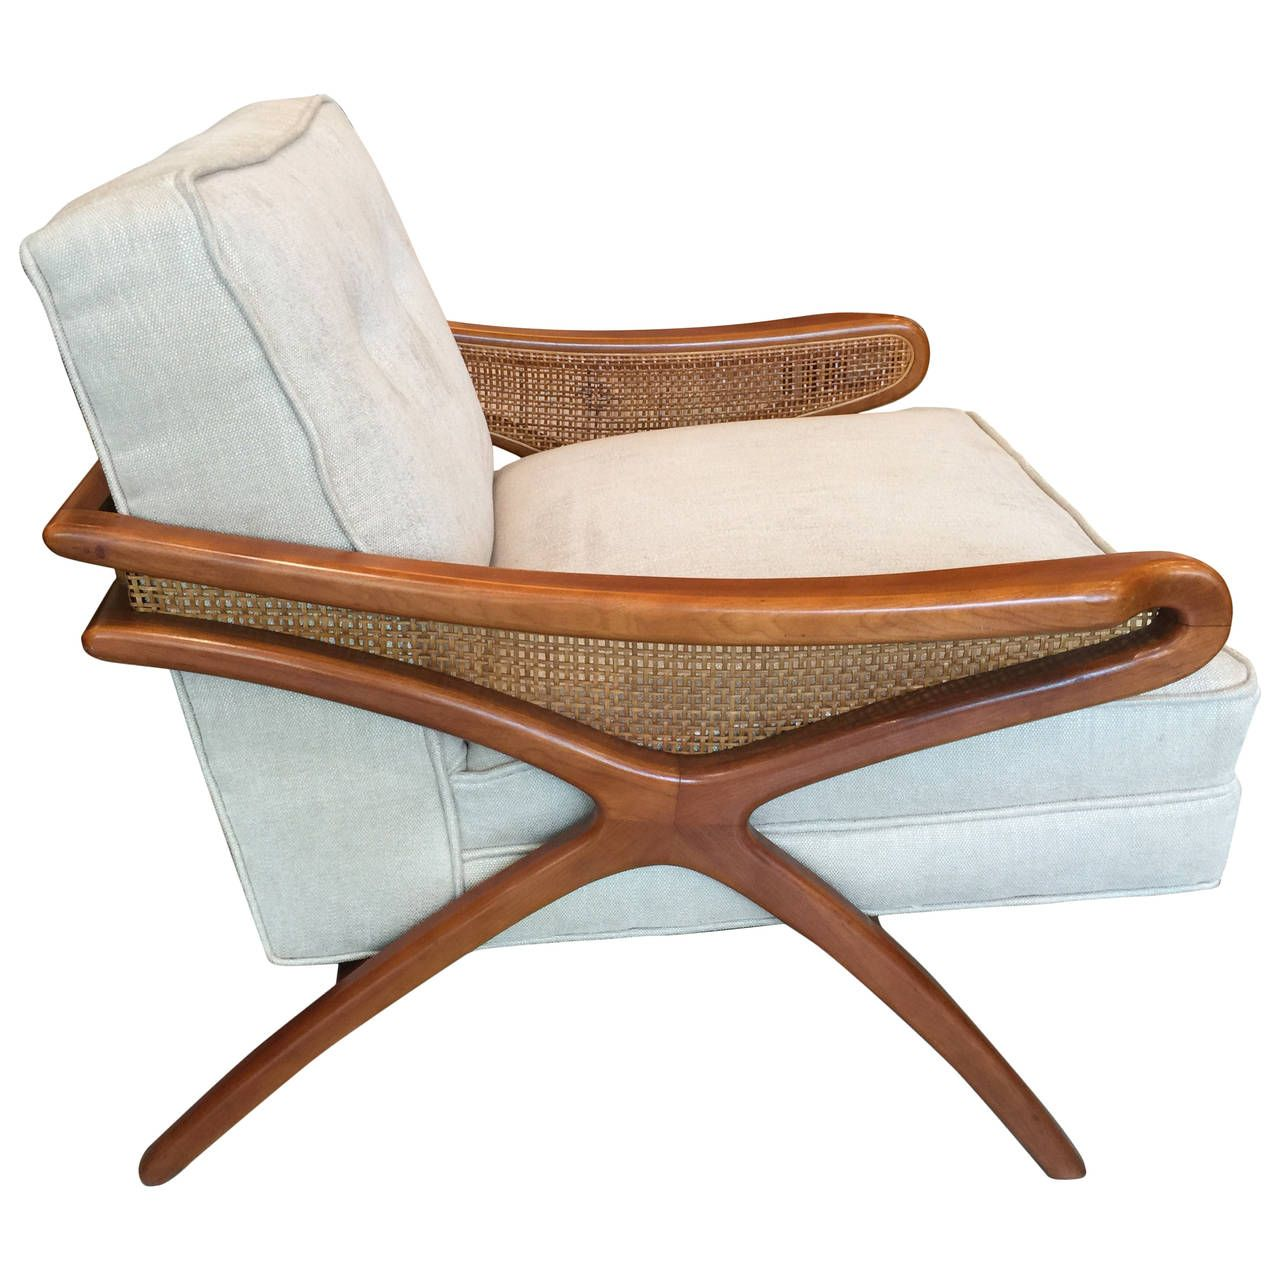 Midcentury Chairs Mid Century Sculptural Club Chair With Rattan Detail